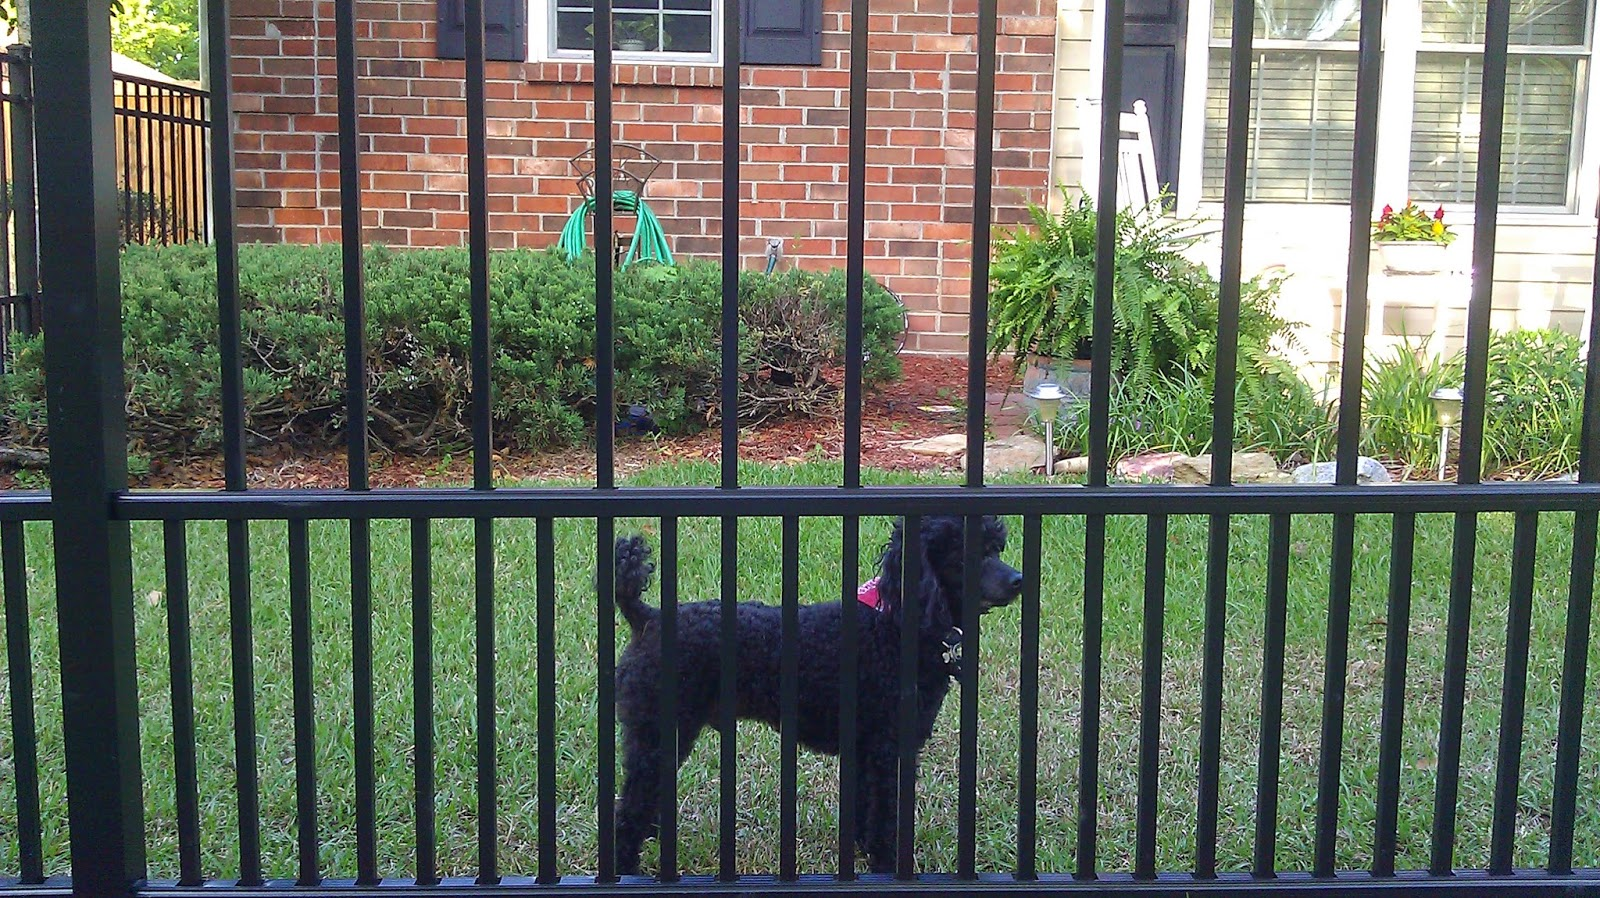 Town Amp Country Fences Llc Save The View Amp Contain The